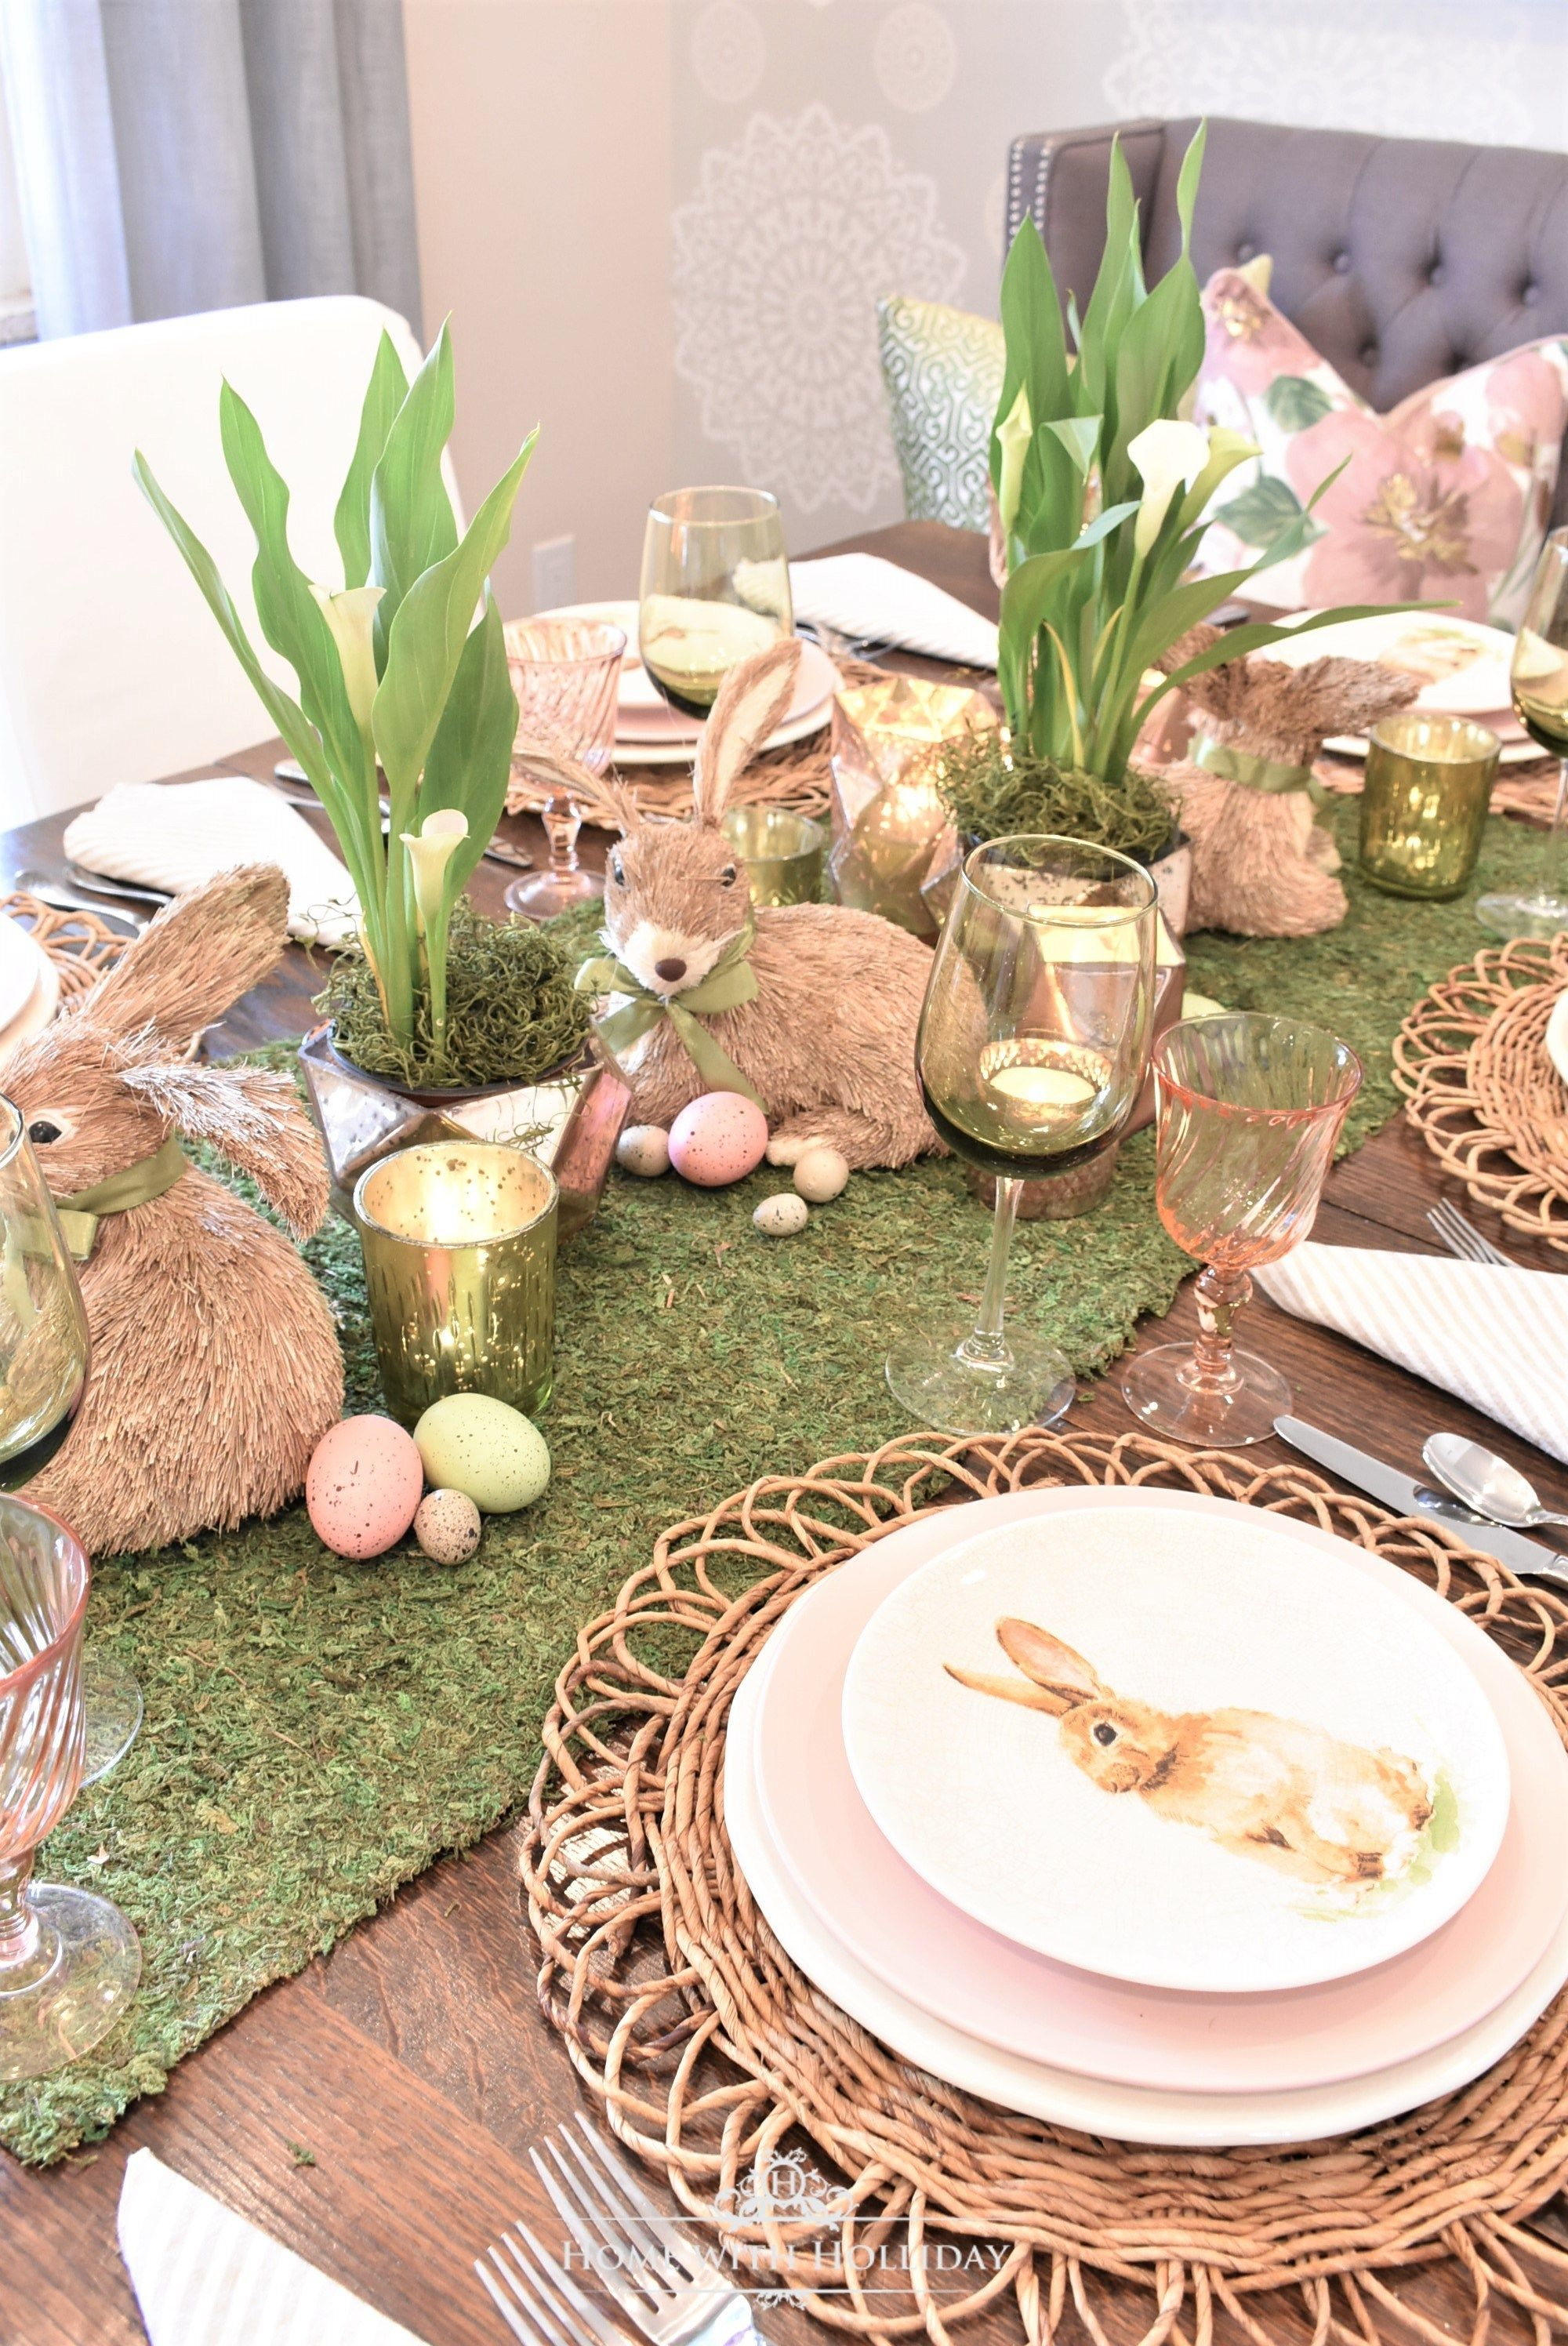 Green And Blush Pink Easter Table Setting Home With Holliday Easter Table Settings Easter Dinner Table Setting Easter Table Decorations